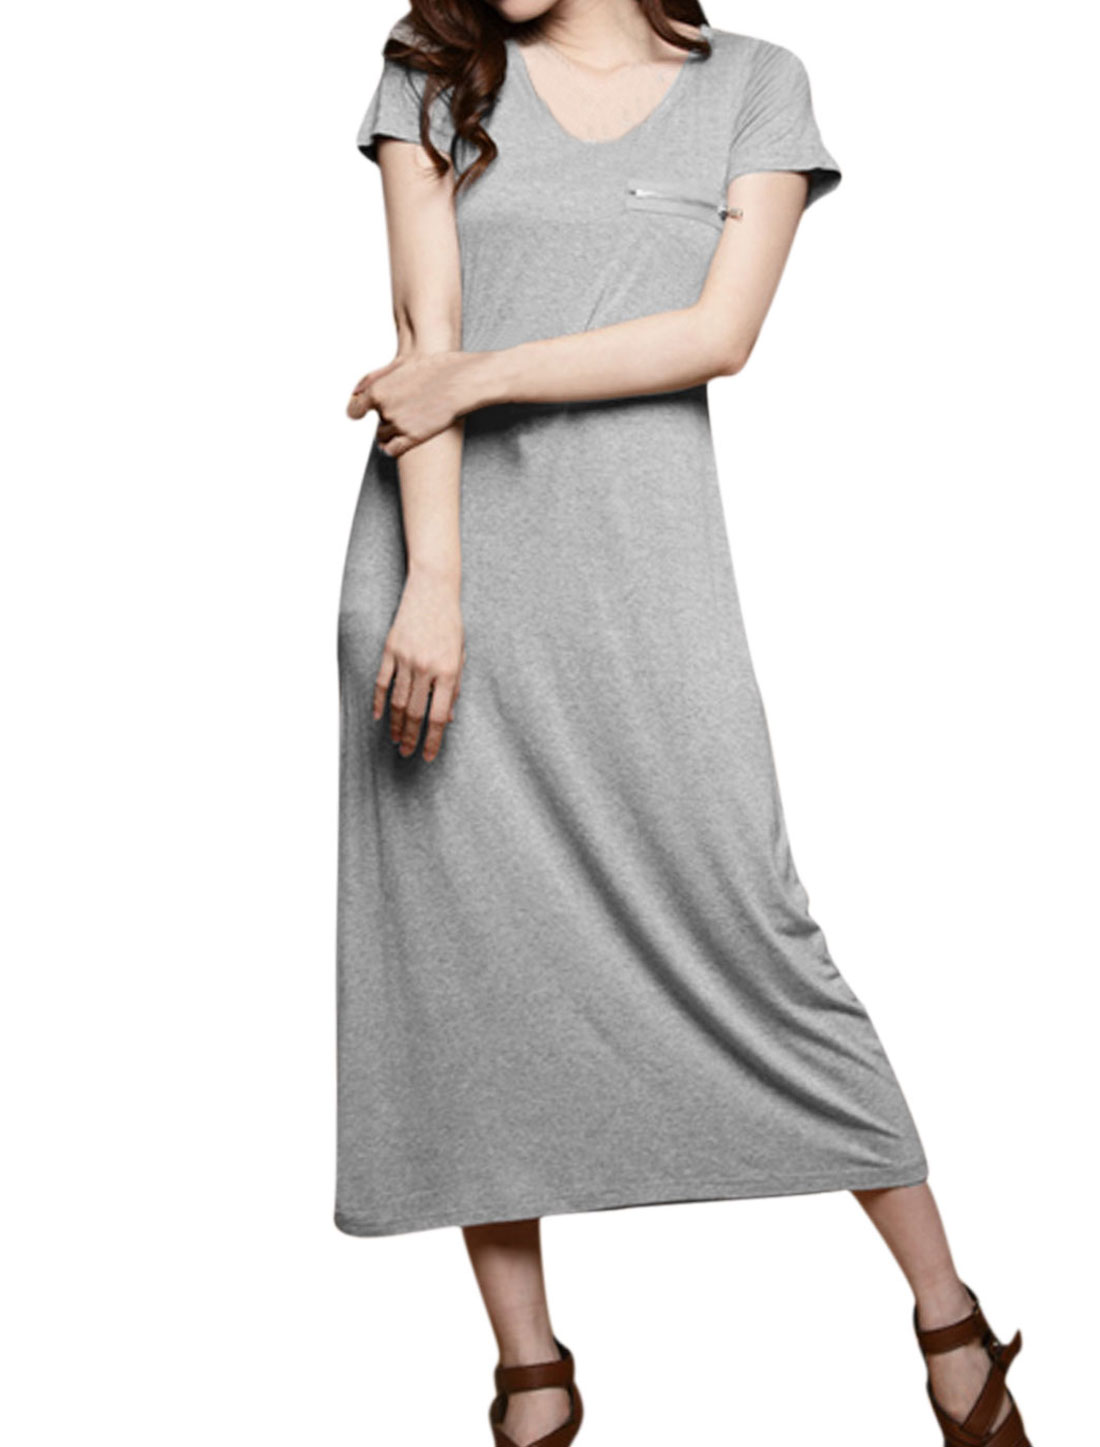 Women's Short Sleeve Scoop Neck Mock Chest Pocket Mid Calf Dress Light Gray XS